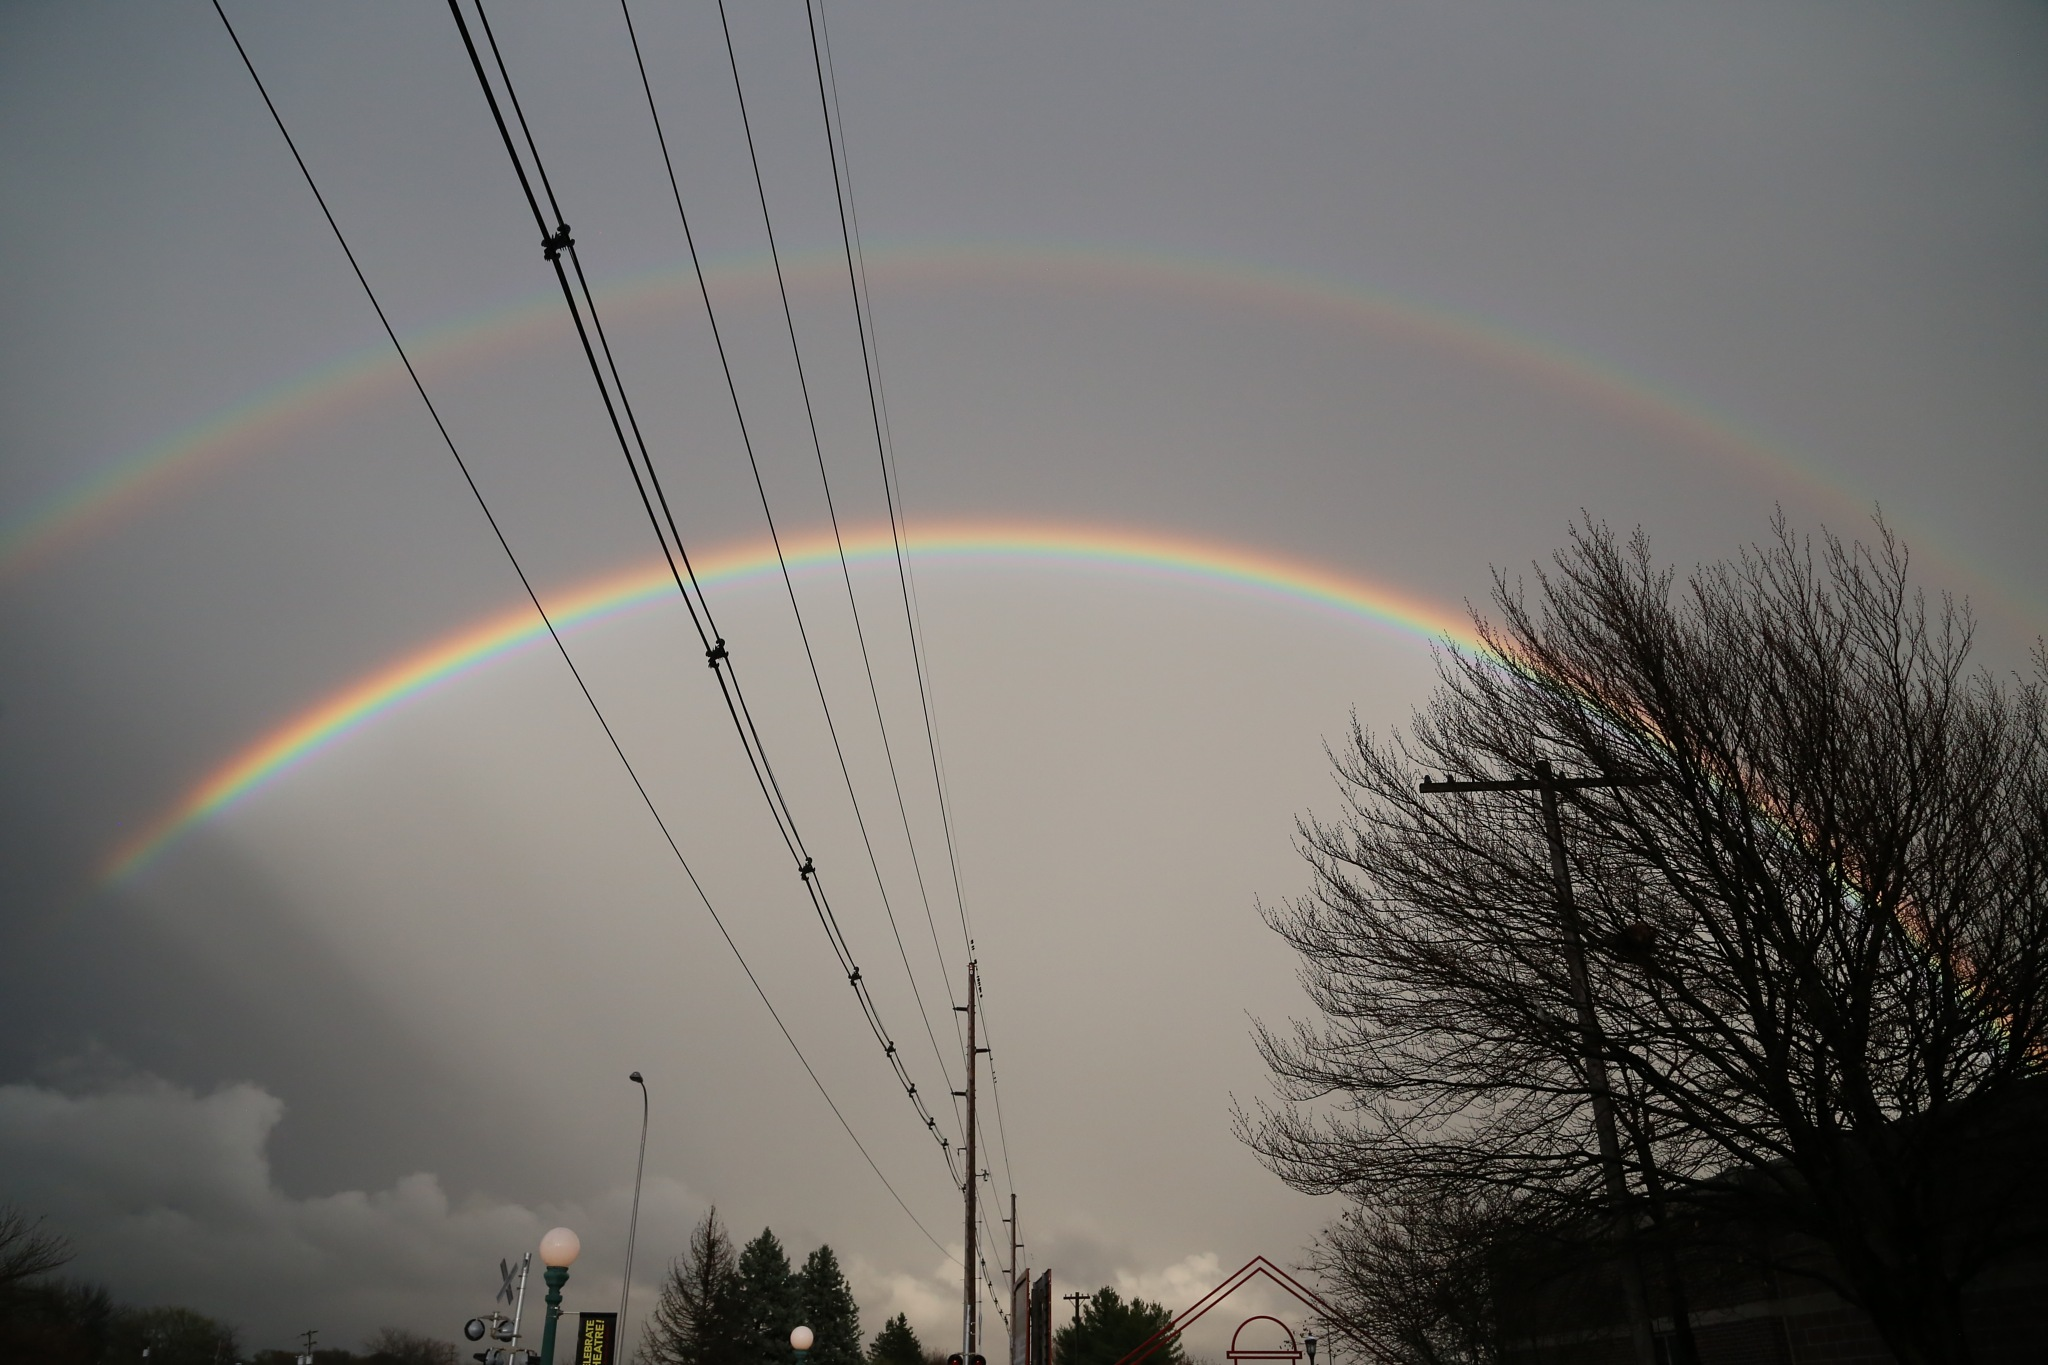 Double Rainbow by Henry M. Radcliffe III